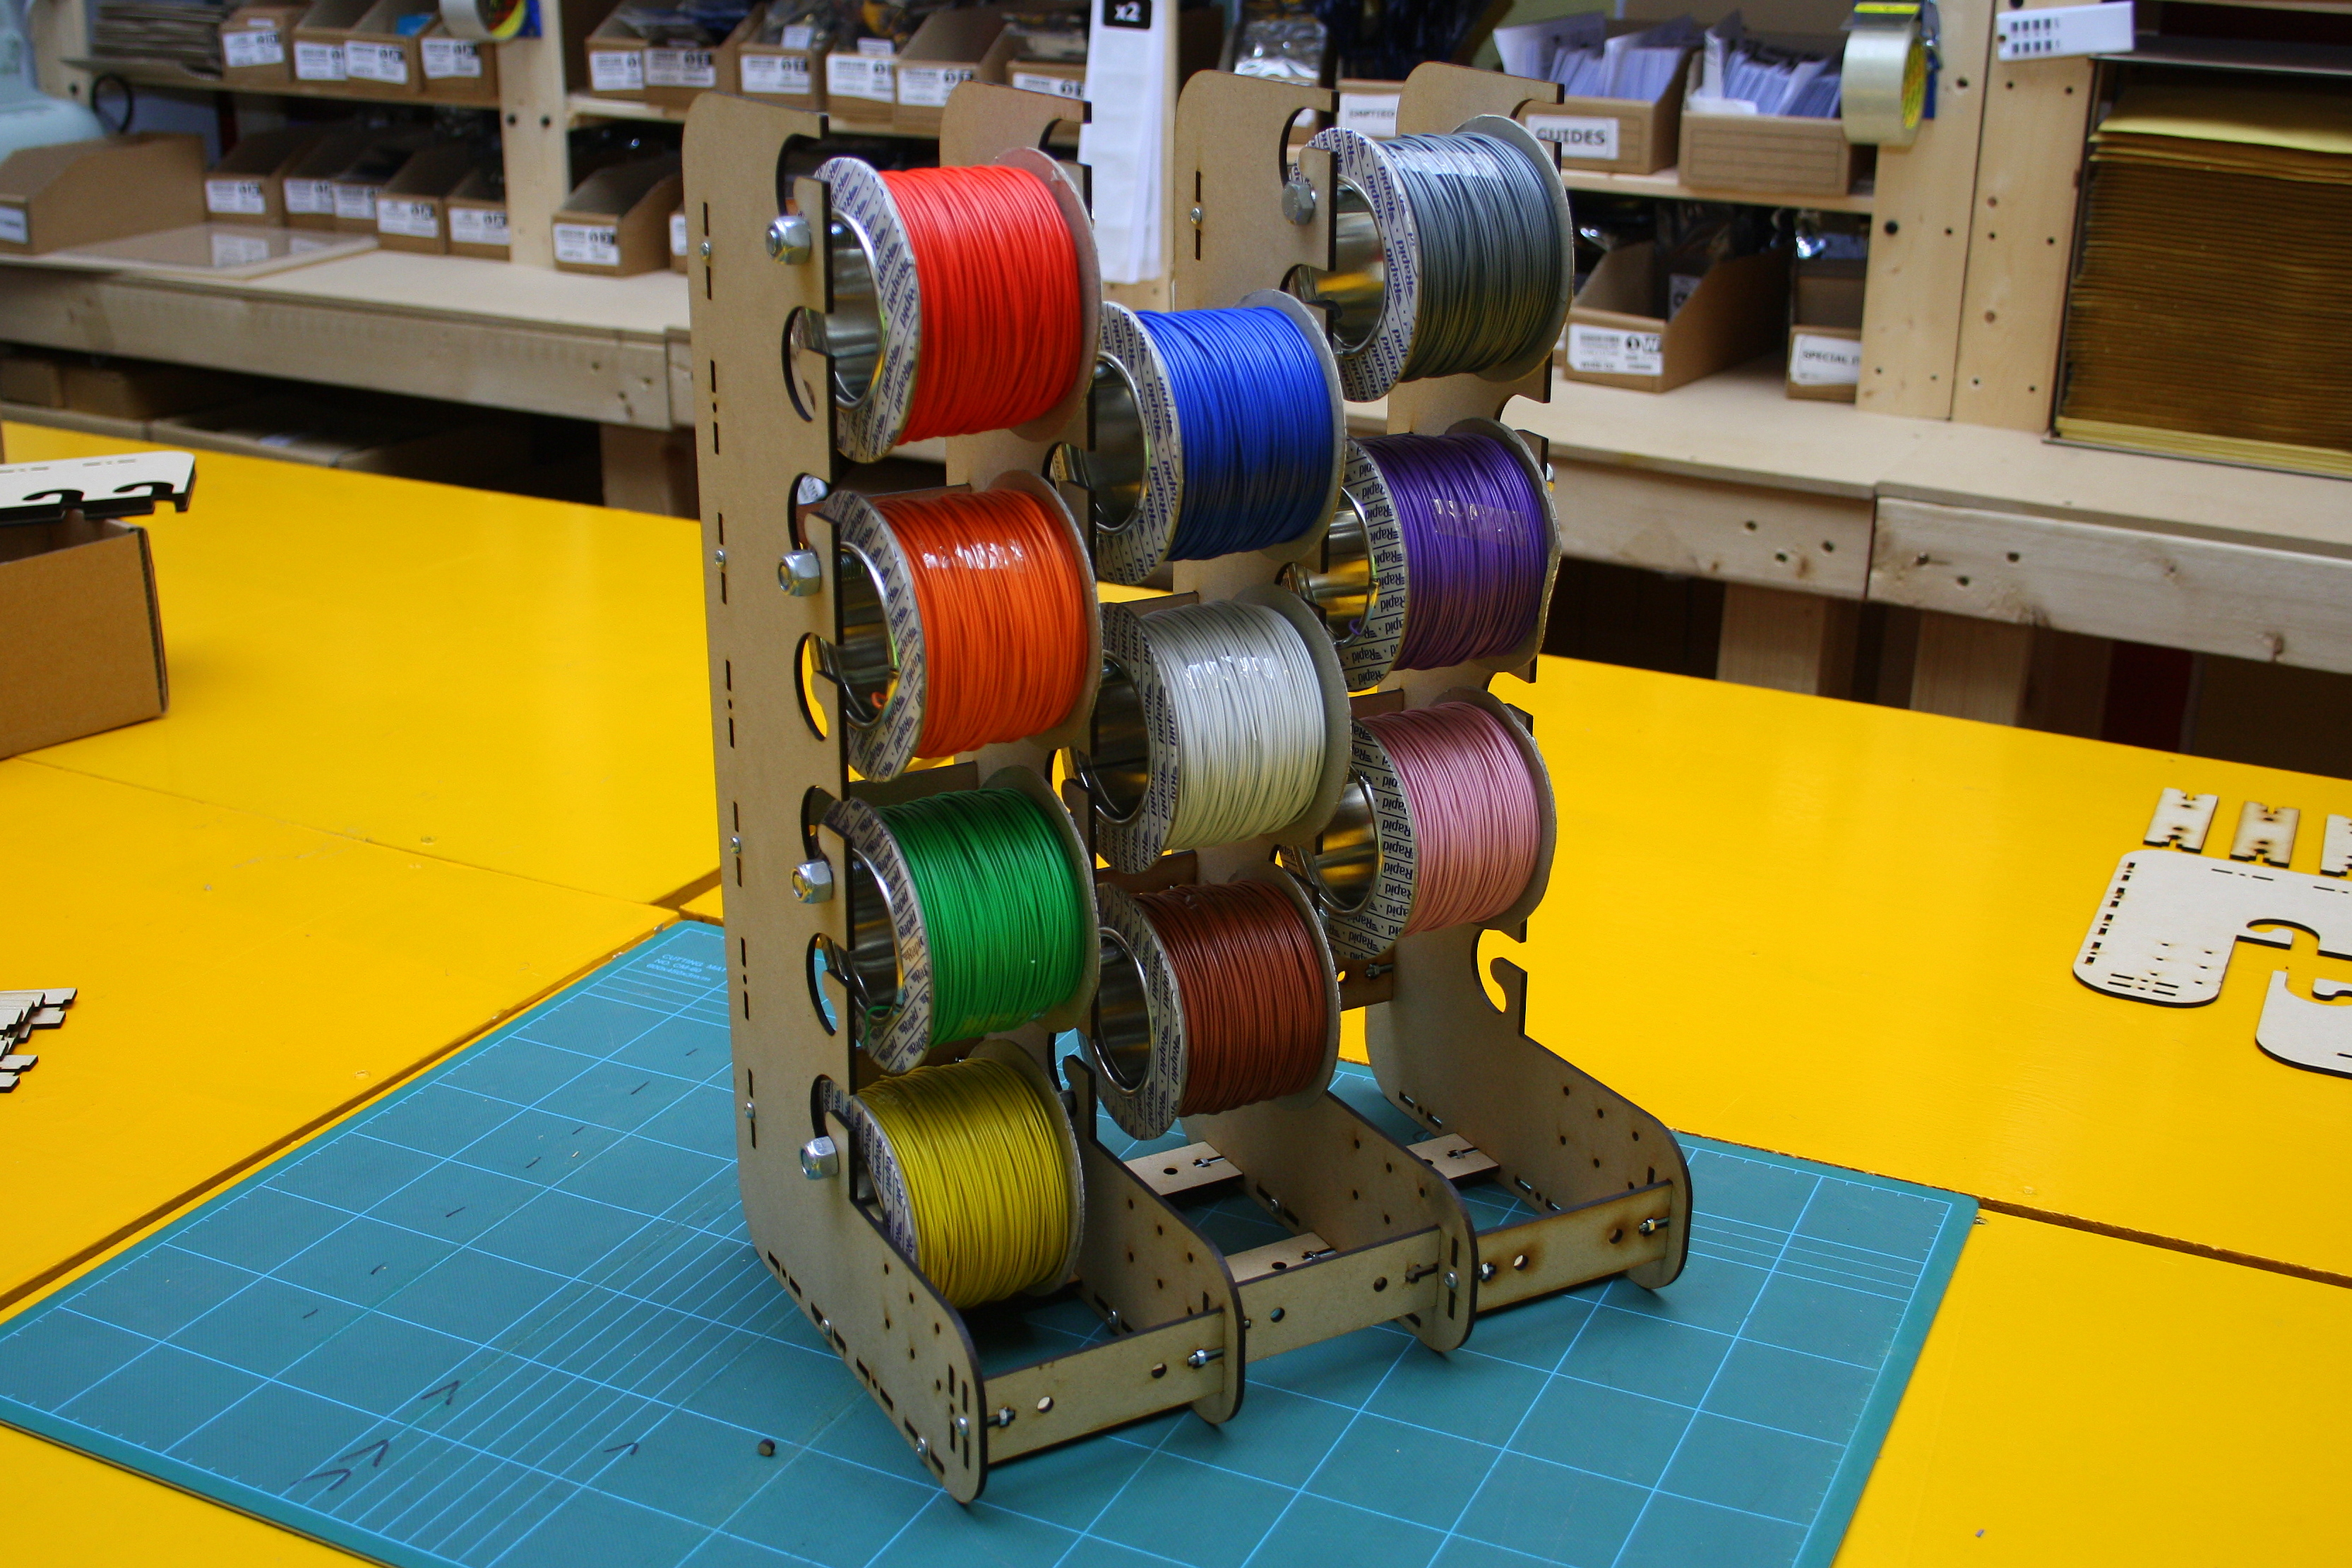 Wire Spool Holder (WIHO) by oomlout - Thingiverse